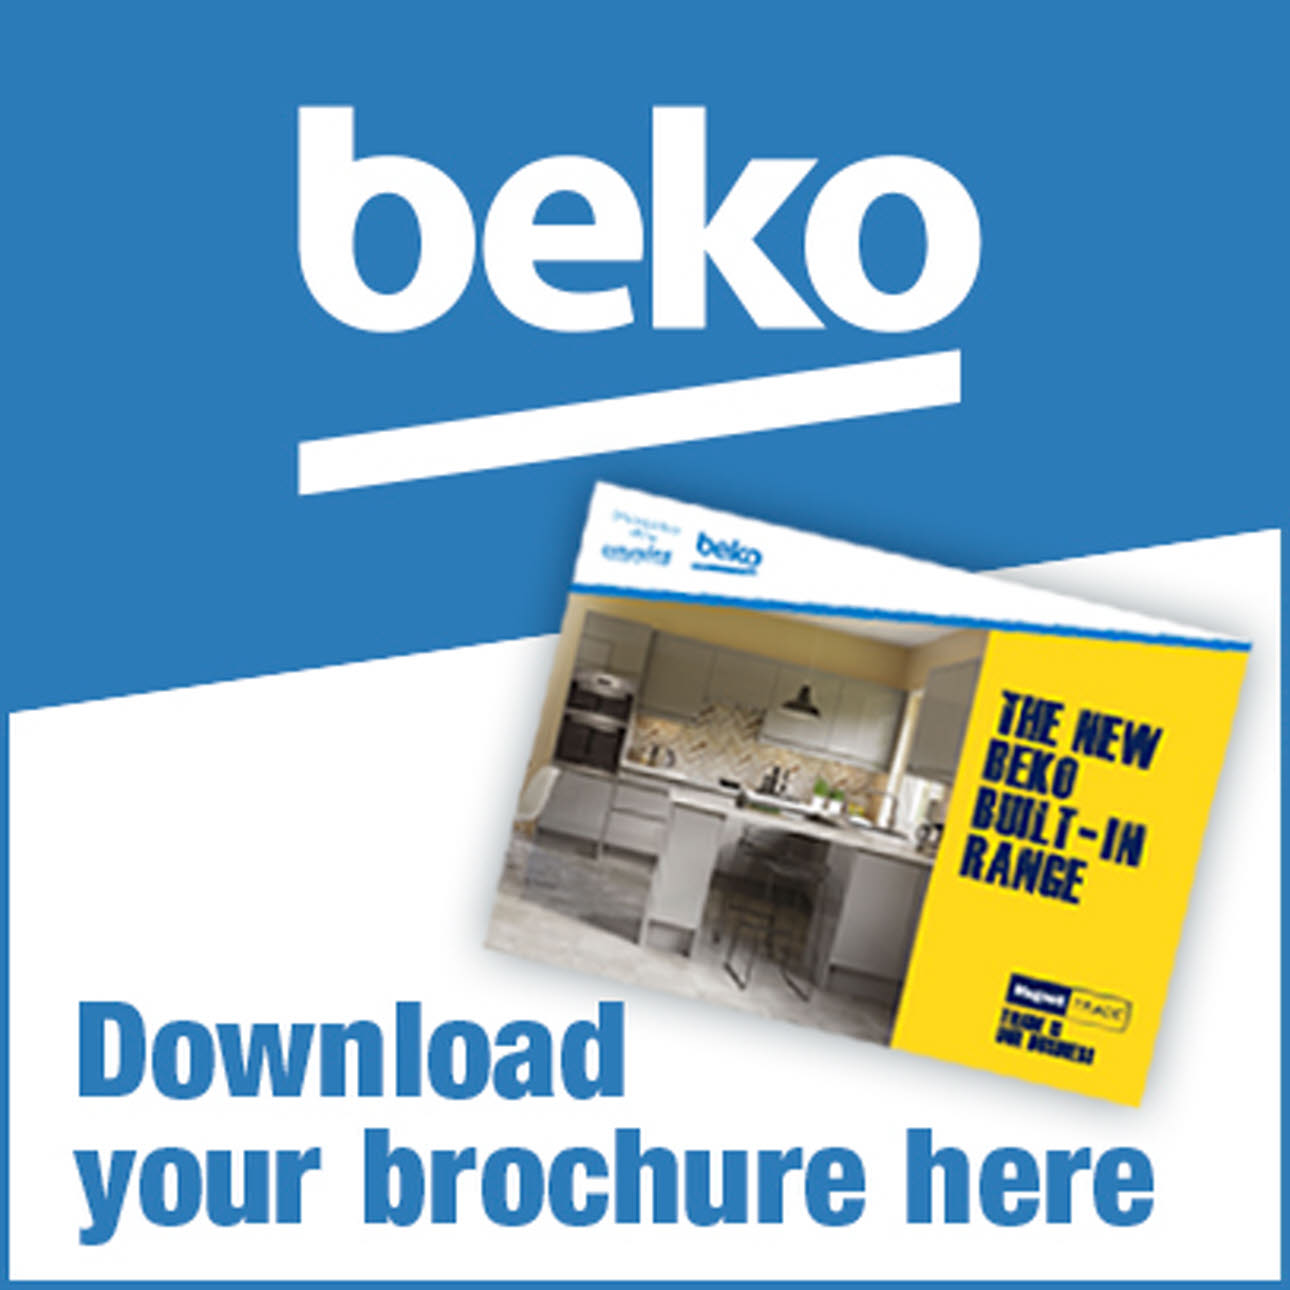 Beko Kitchen Brochure Logo, download your brochure